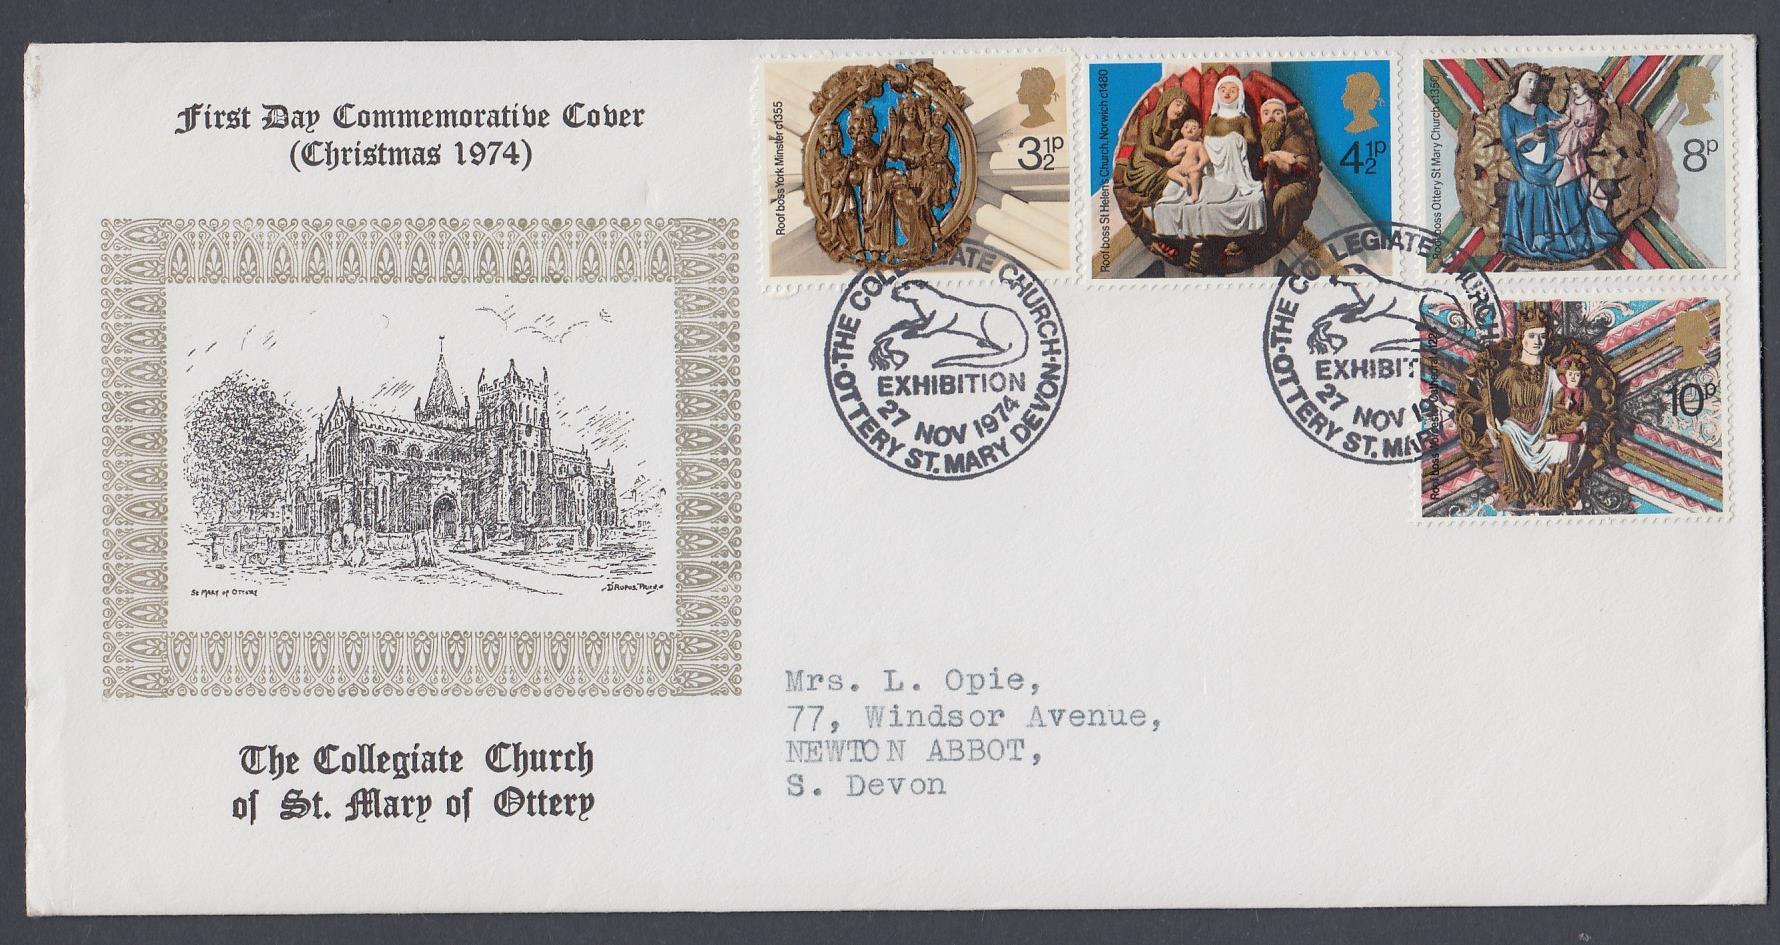 STAMPS FRST DAY COVERS 1974 Christmas St Mary of Ottery Official FDC